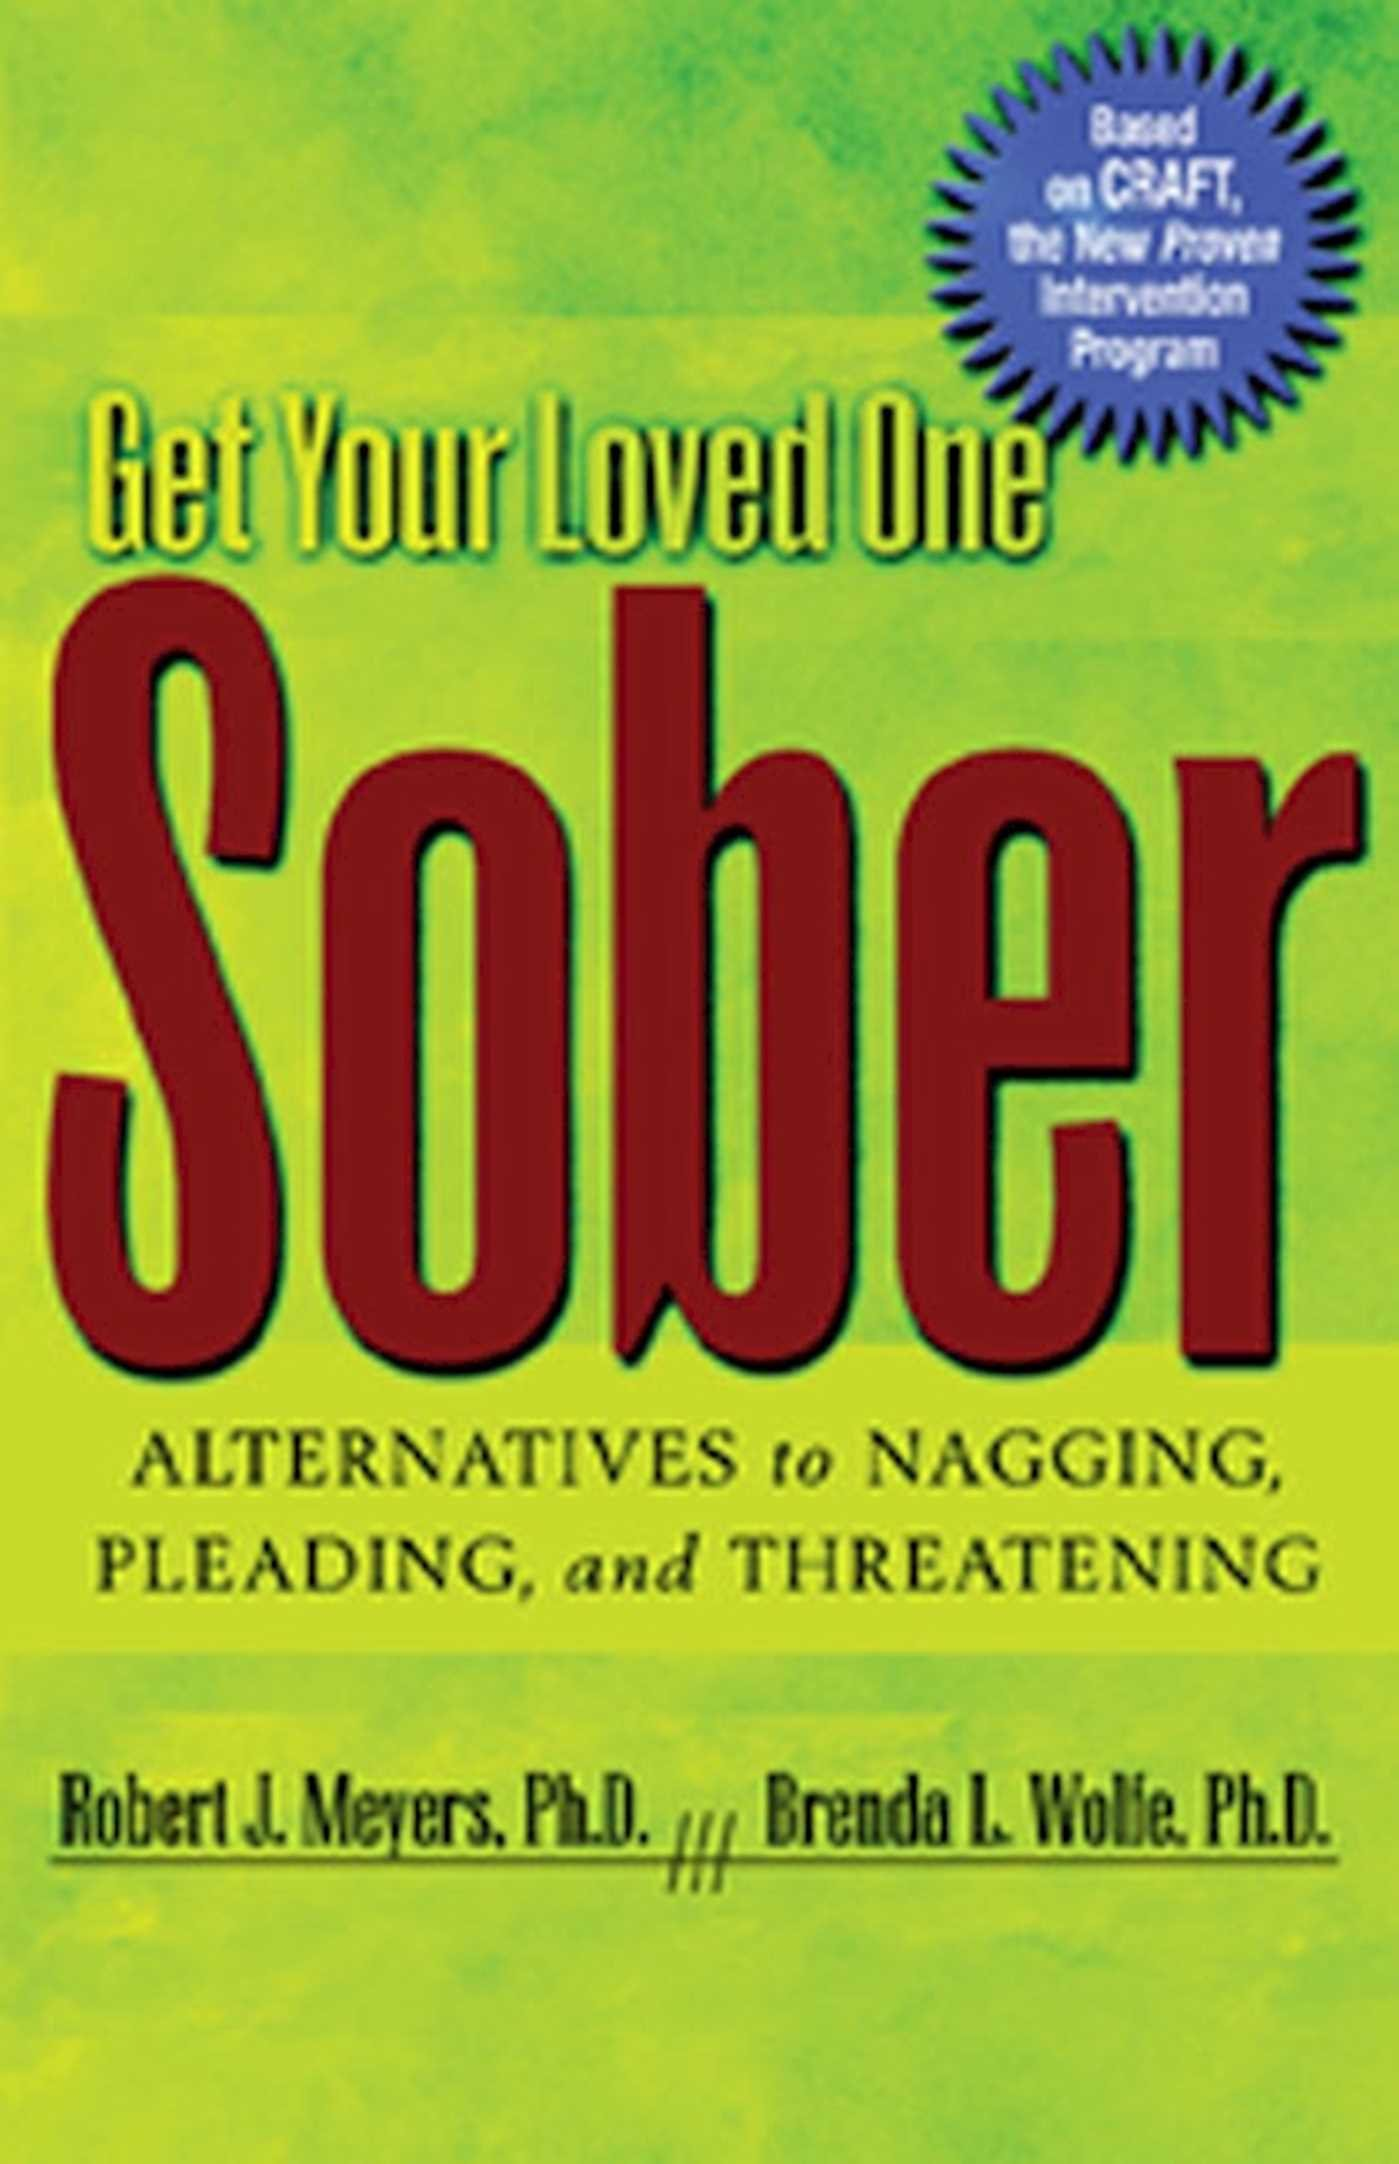 Get your loved one sober: Alternatives to nagging, pleading, and threatening - A fantastic book for family members who have a loved with a drug or alcohol problem and where the person isn't willing to seek treatment. We use this with almost all the family members we work with at Sober Families.